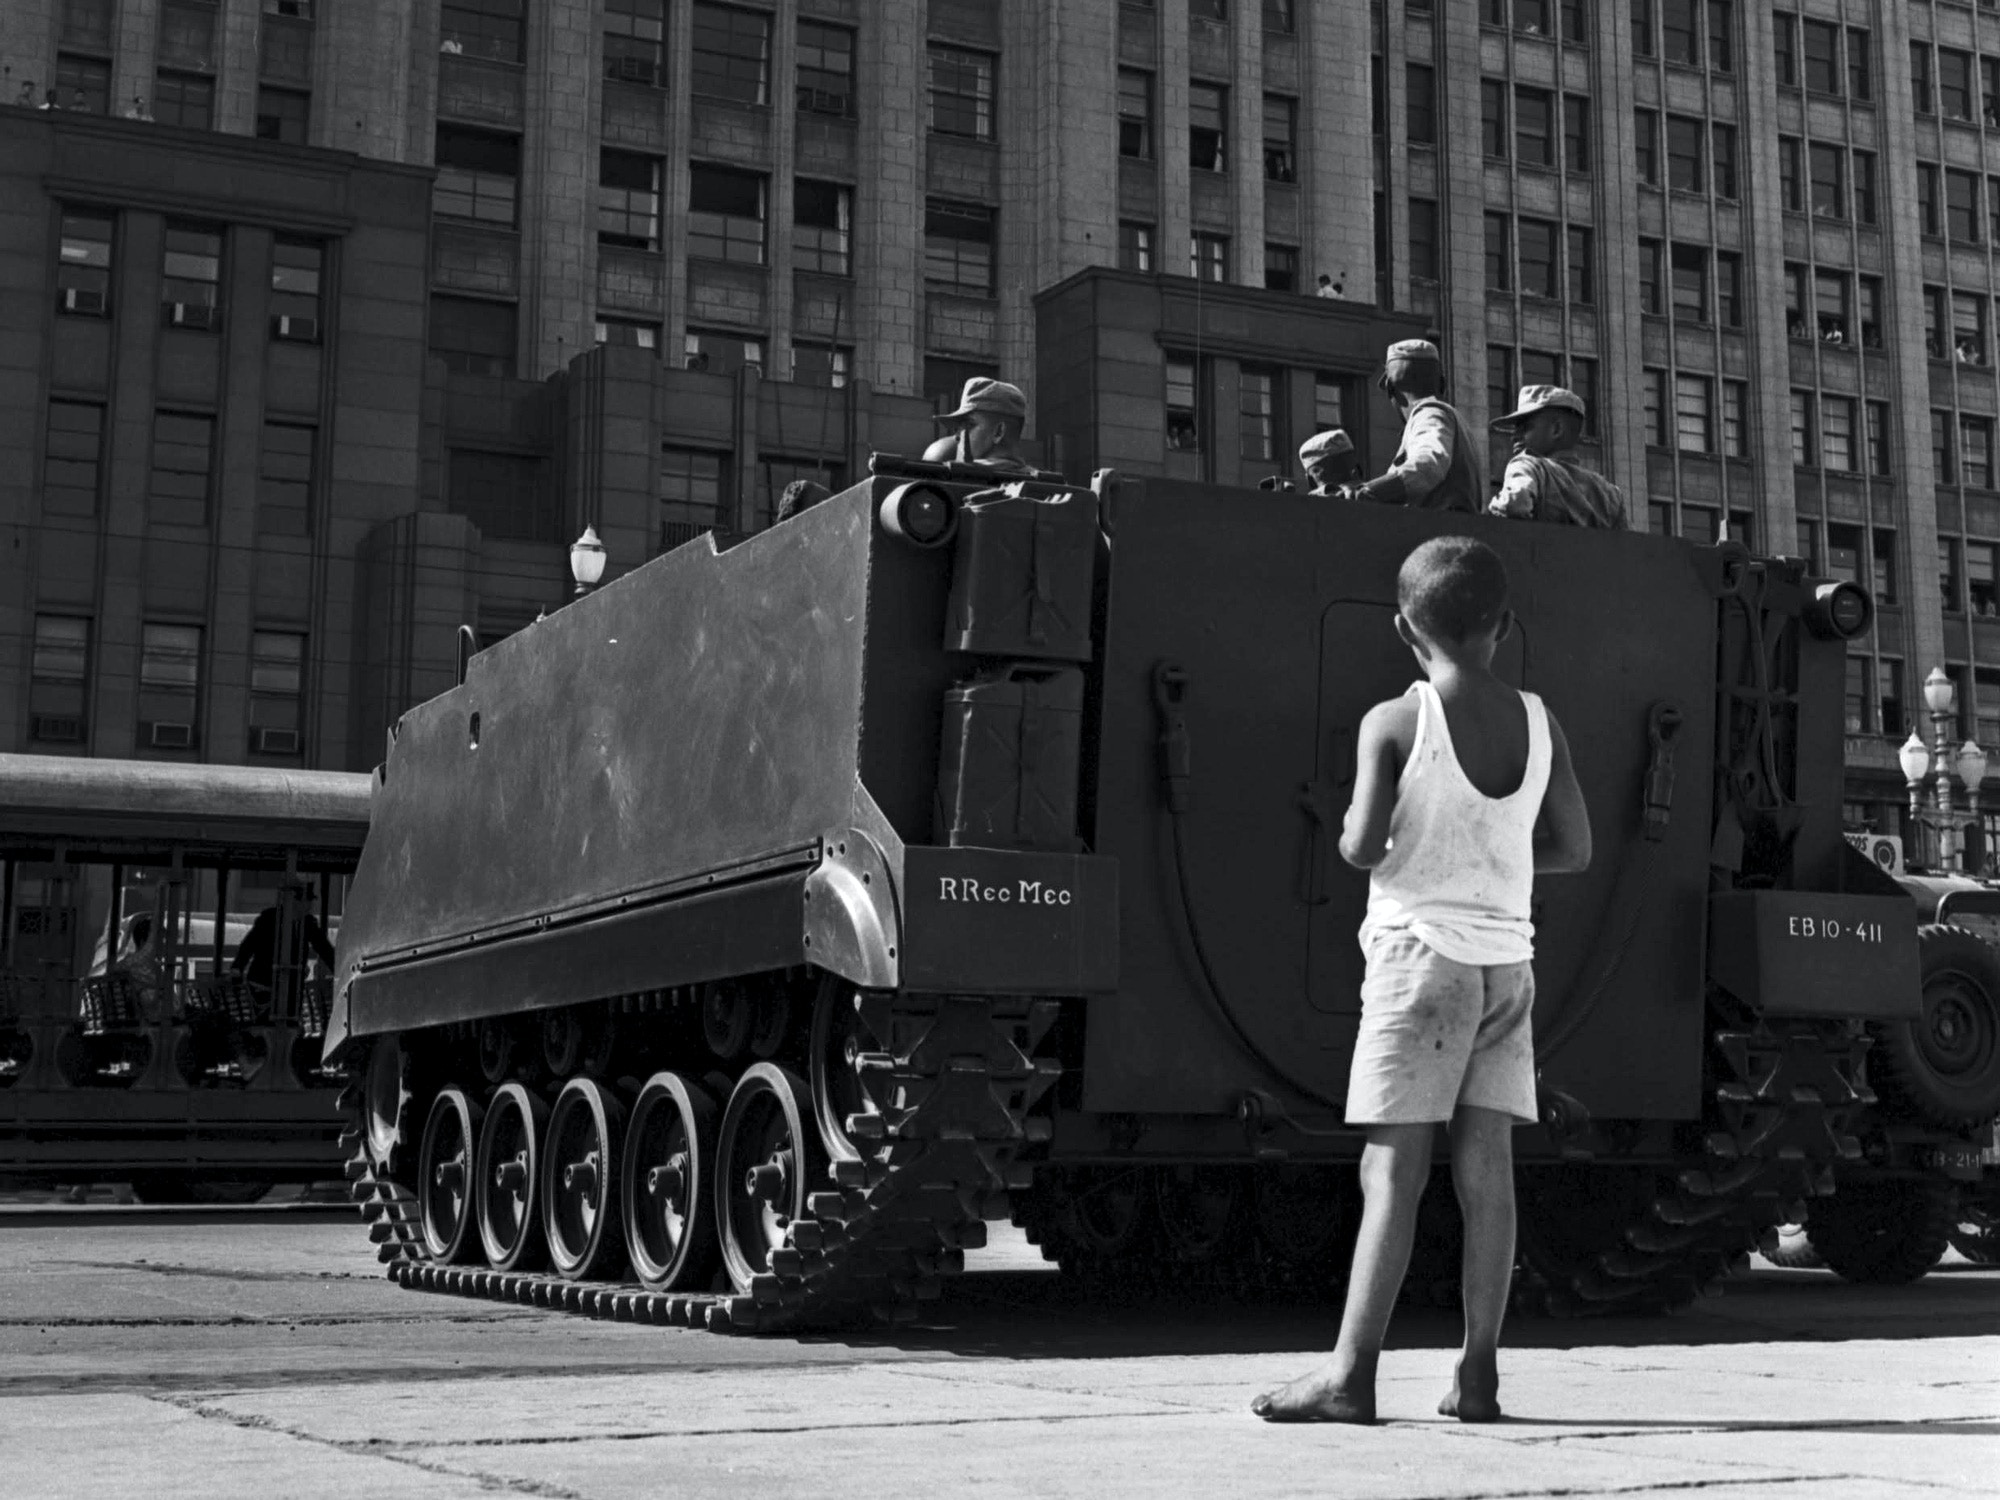 Boy observes soldiers and war tank during rally organized by then President João Goulart, known as Jango, at which base reforms were defended, in Rio de Janeiro, southeastern Brazil, March 13, 1964. The rally was allegedly one of the reasons behind the 1964 coup de d'état - Photo: Domício Pinheiro/Agência Estado/AE (Agencia Estado via AP Images)